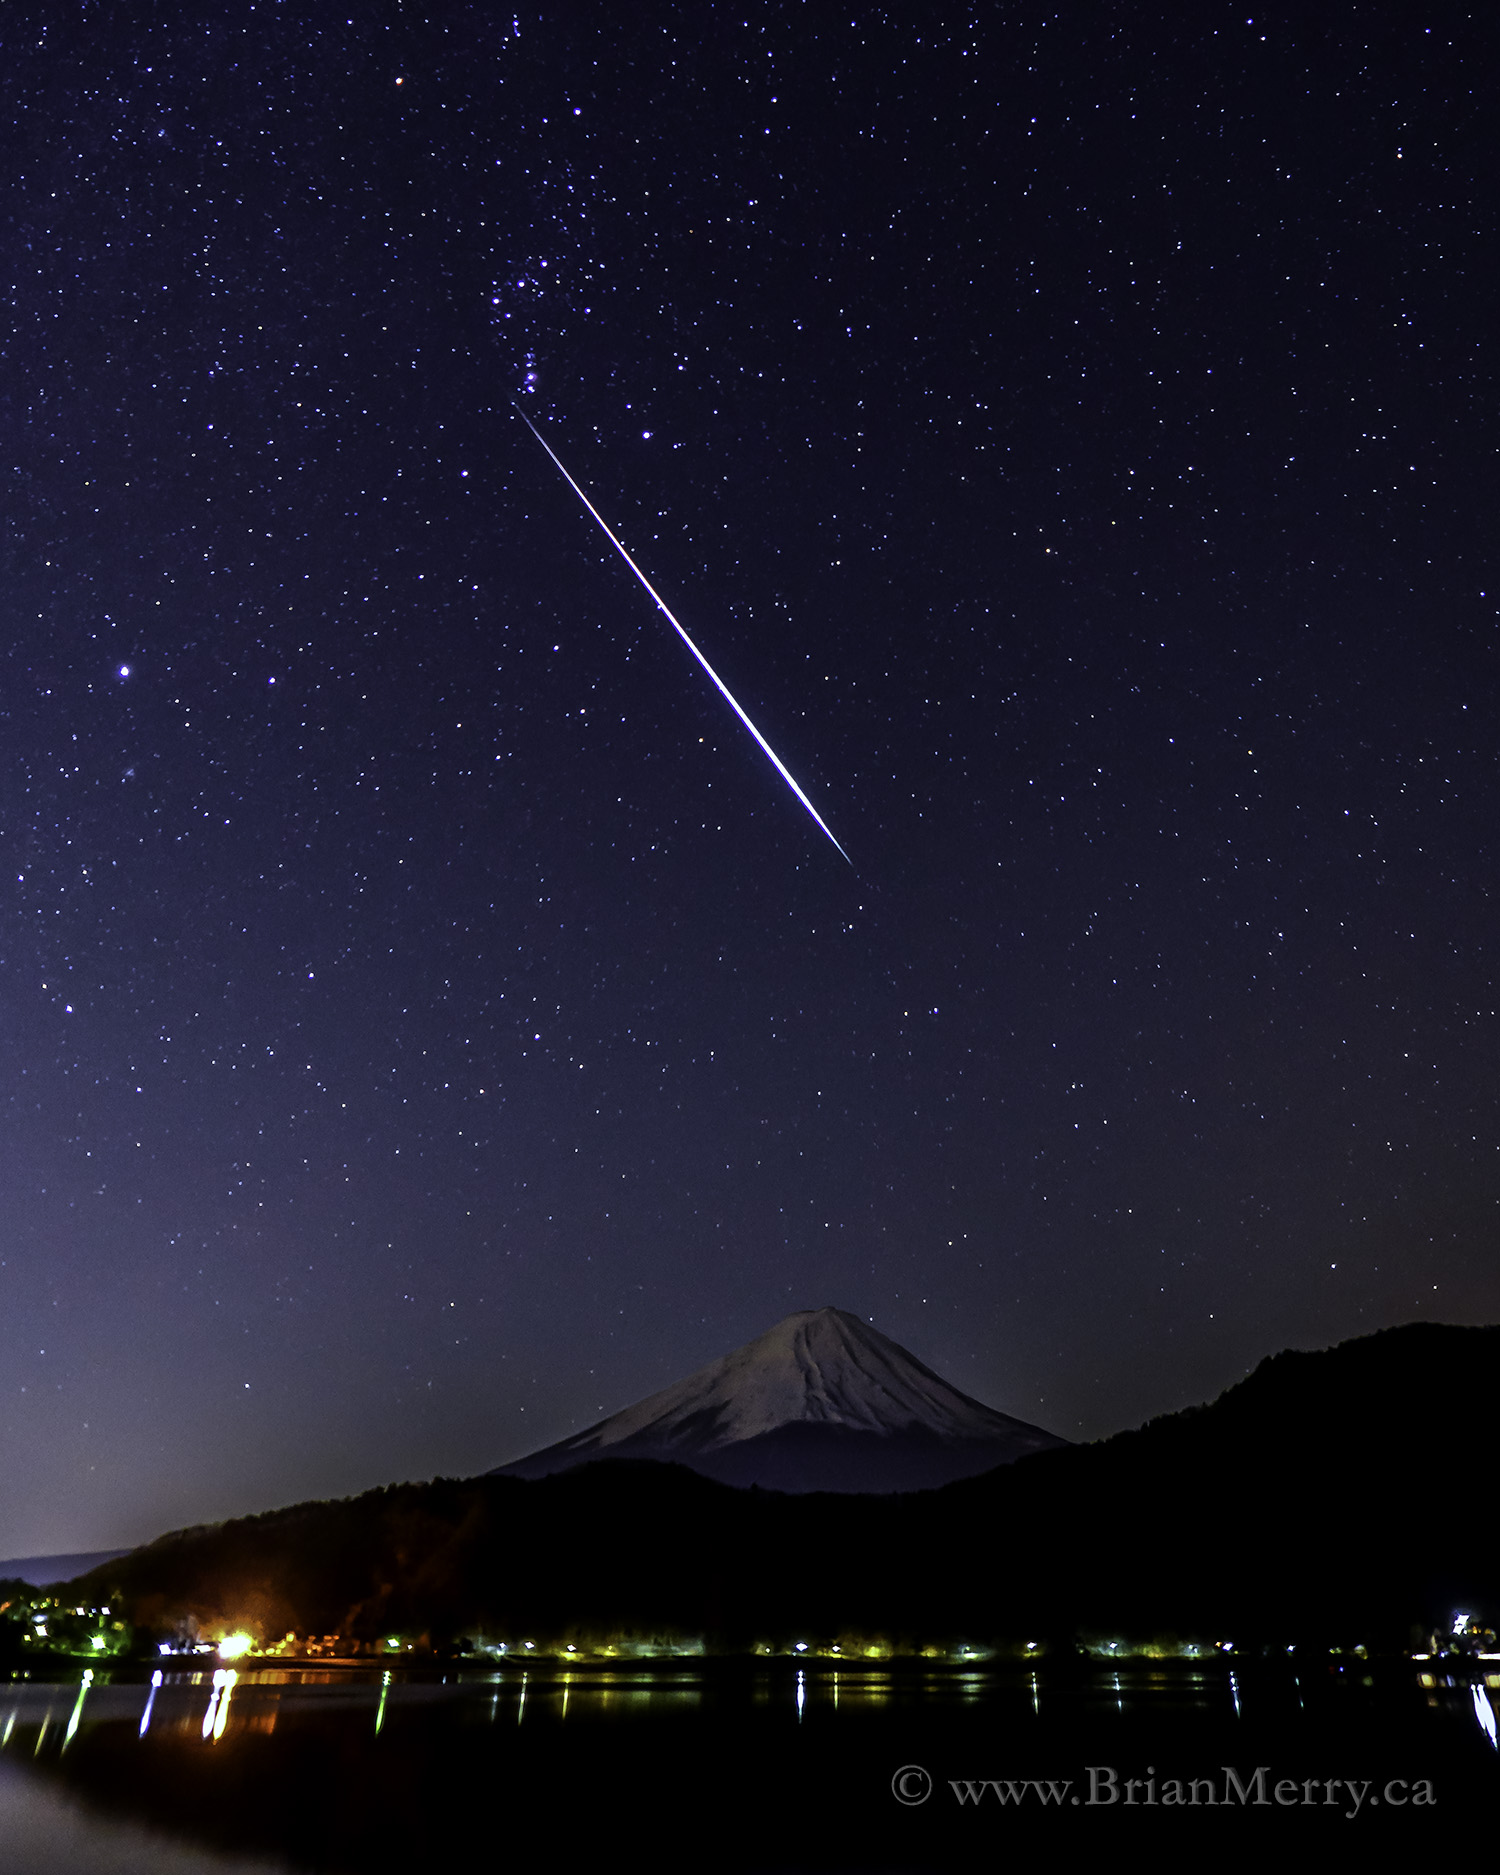 Meteor over Mount Fuji, Japan